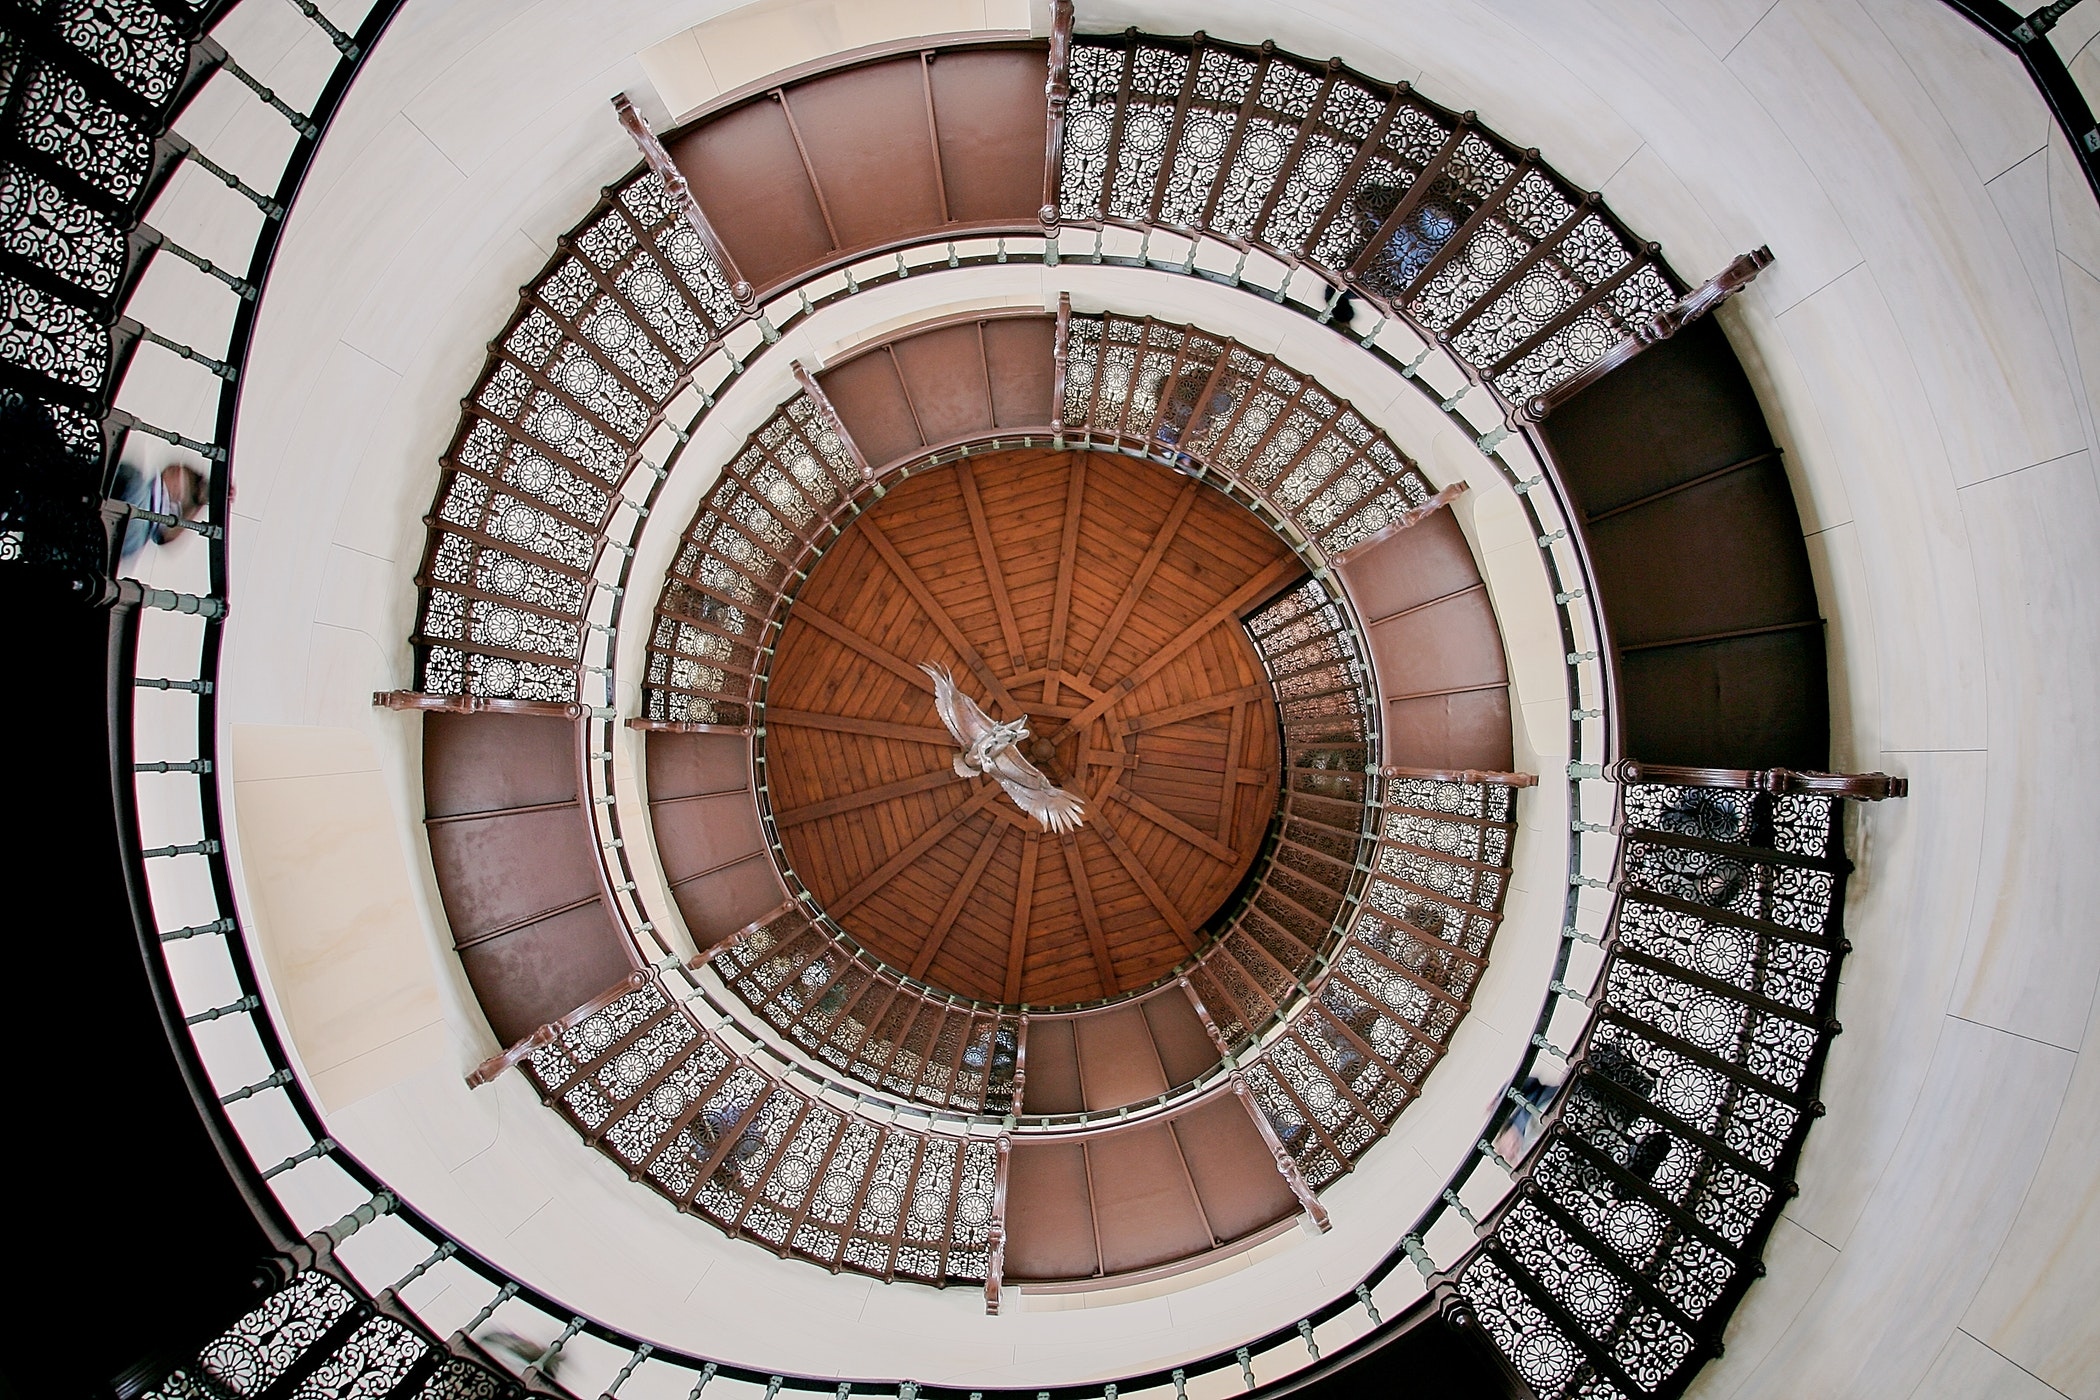 Top view from a spiral staircase.